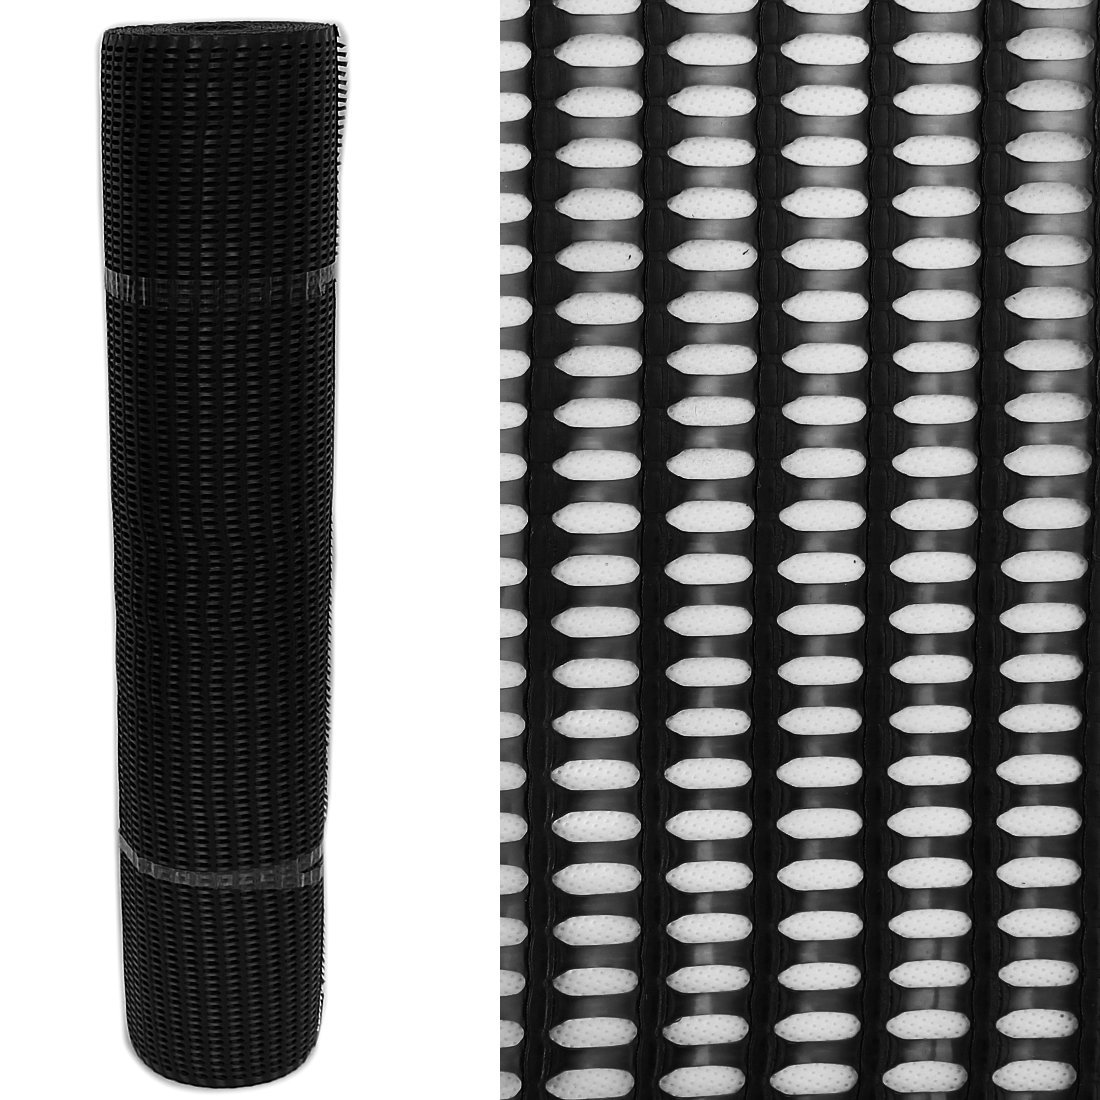 60% High Strength Windbreak Fence Netting Plastic Mesh 1m wide by the Metre, Black True Products